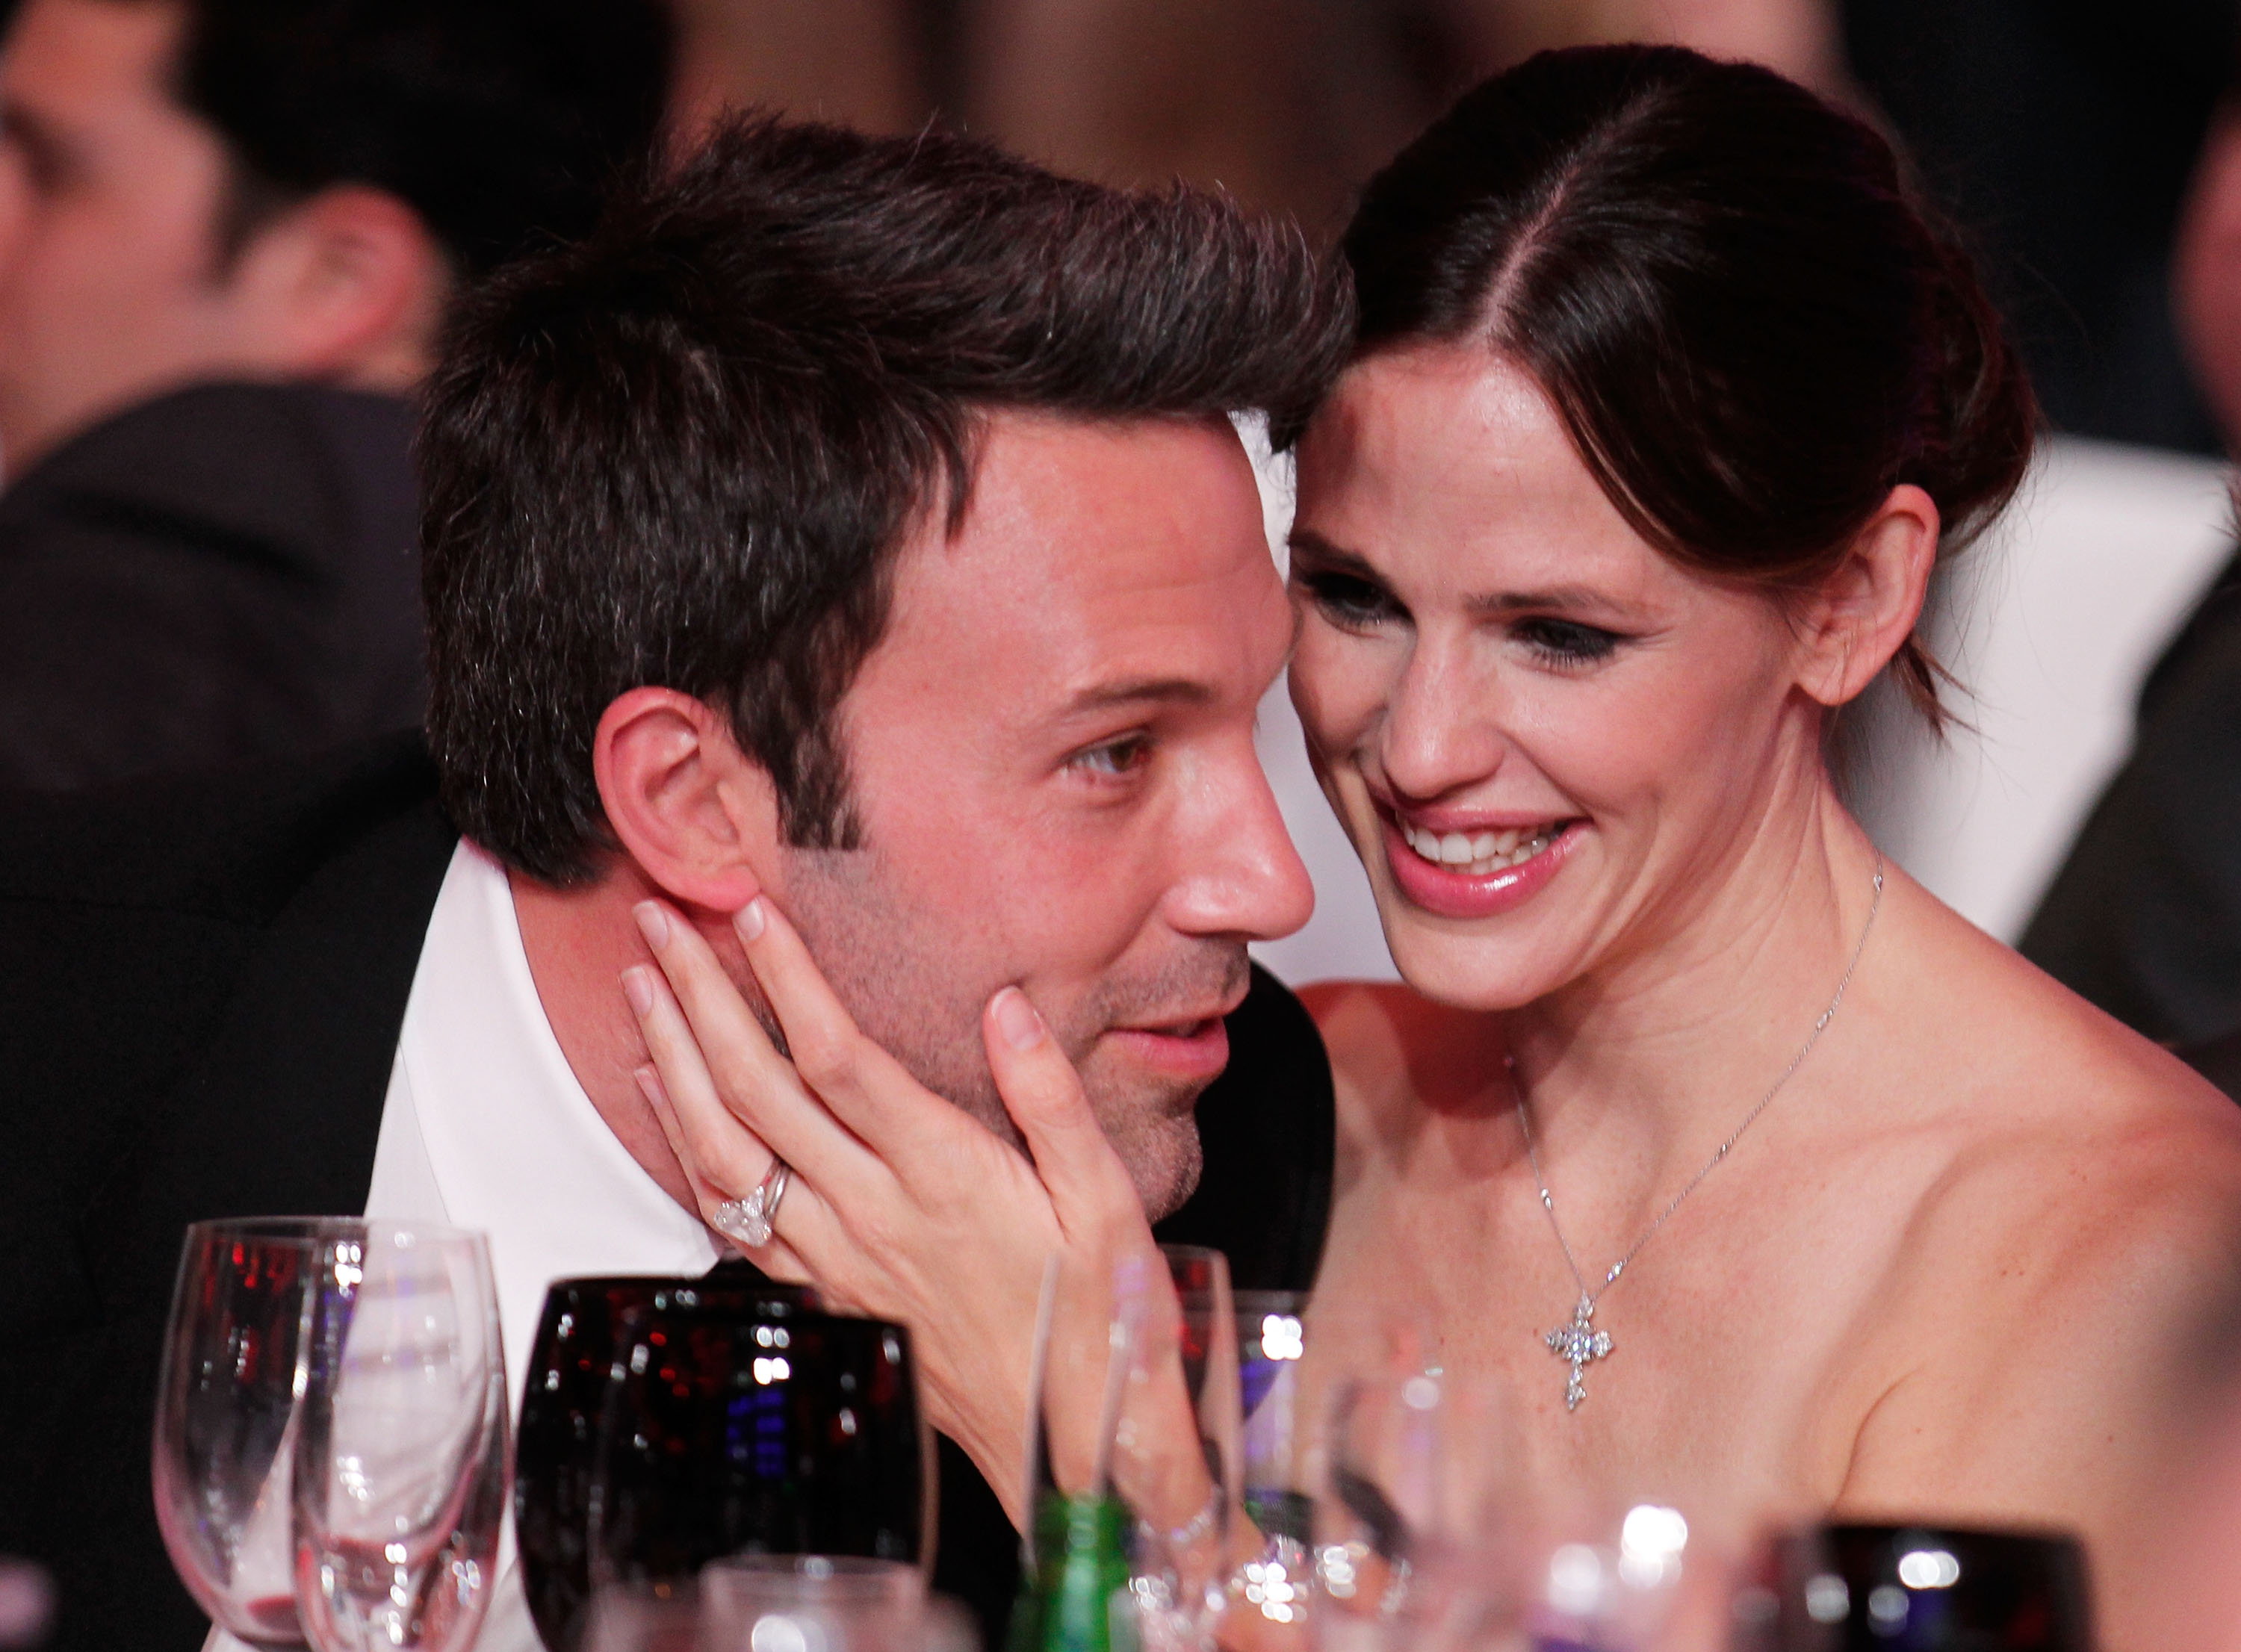 Actor Ben Affleck and actress Jennifer Garner at the 16th annual Critics' Choice Movie Awards at the Hollywood Palladium on January 14, 2011 in Los Angeles, California. (Source: Getty images)